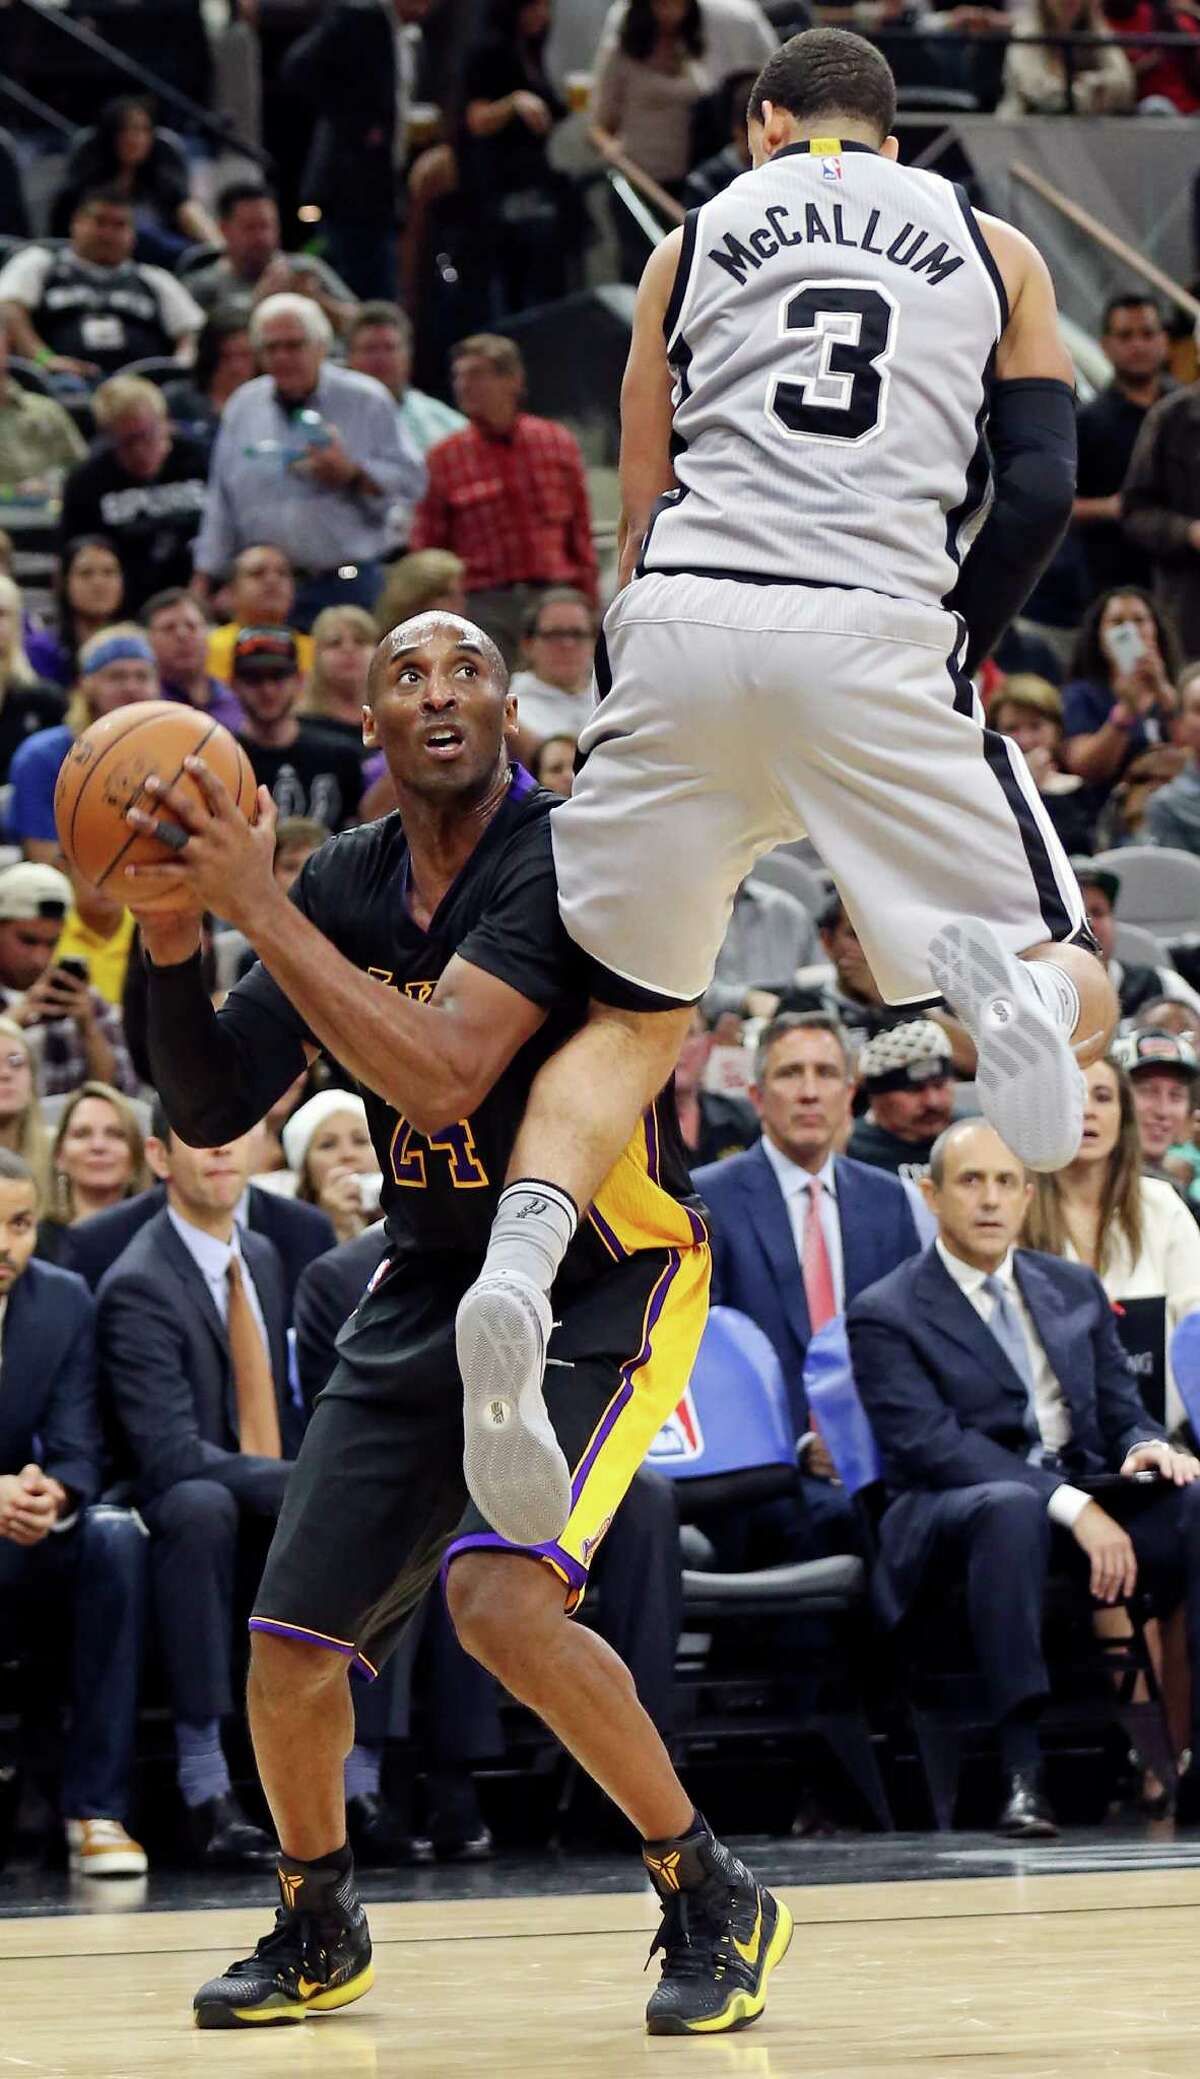 Los Angeles Lakers' Kobe Bryant is fouled by San Antonio Spurs' Ray McCallum during second half action Friday Dec. 11, 2015 at the AT&T Center.